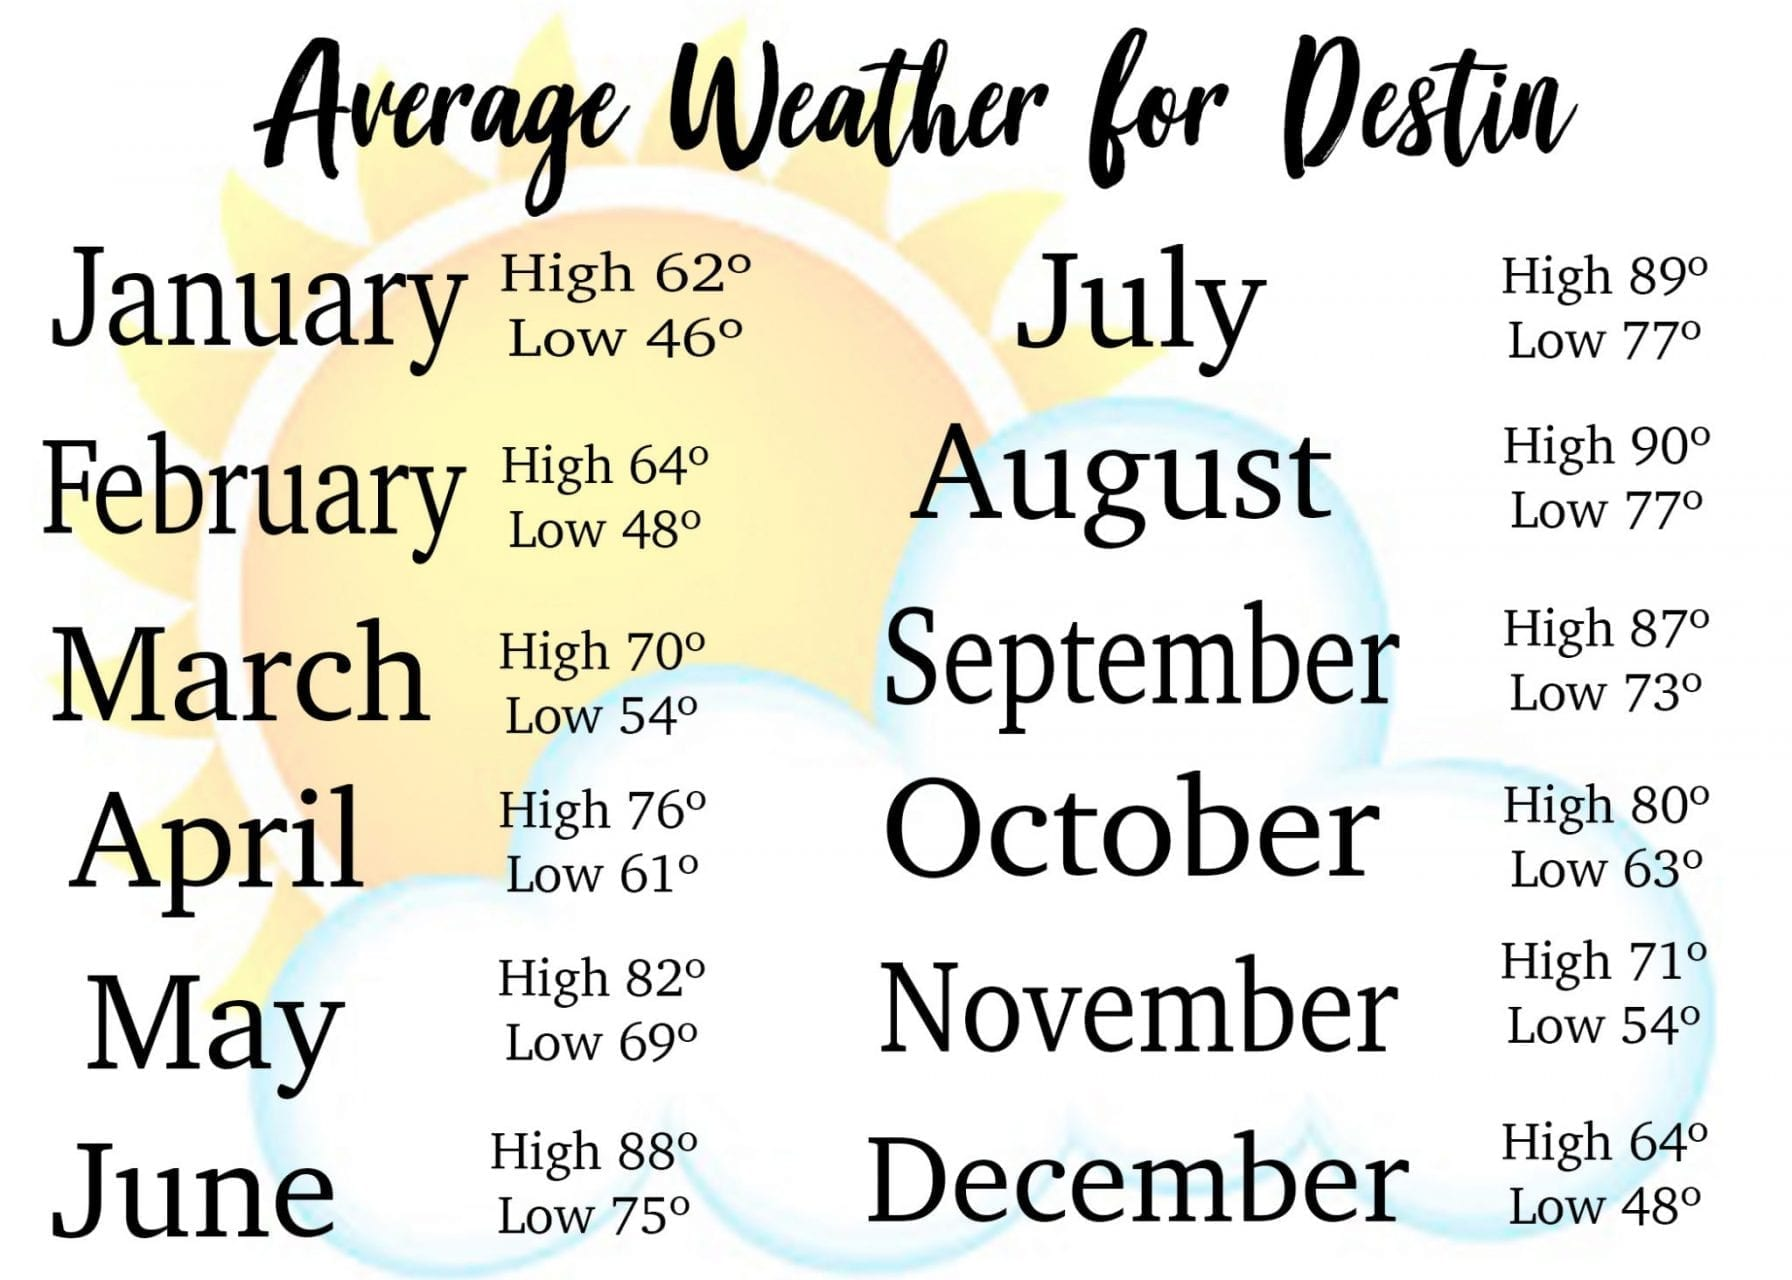 Average weather chart for Destin FL